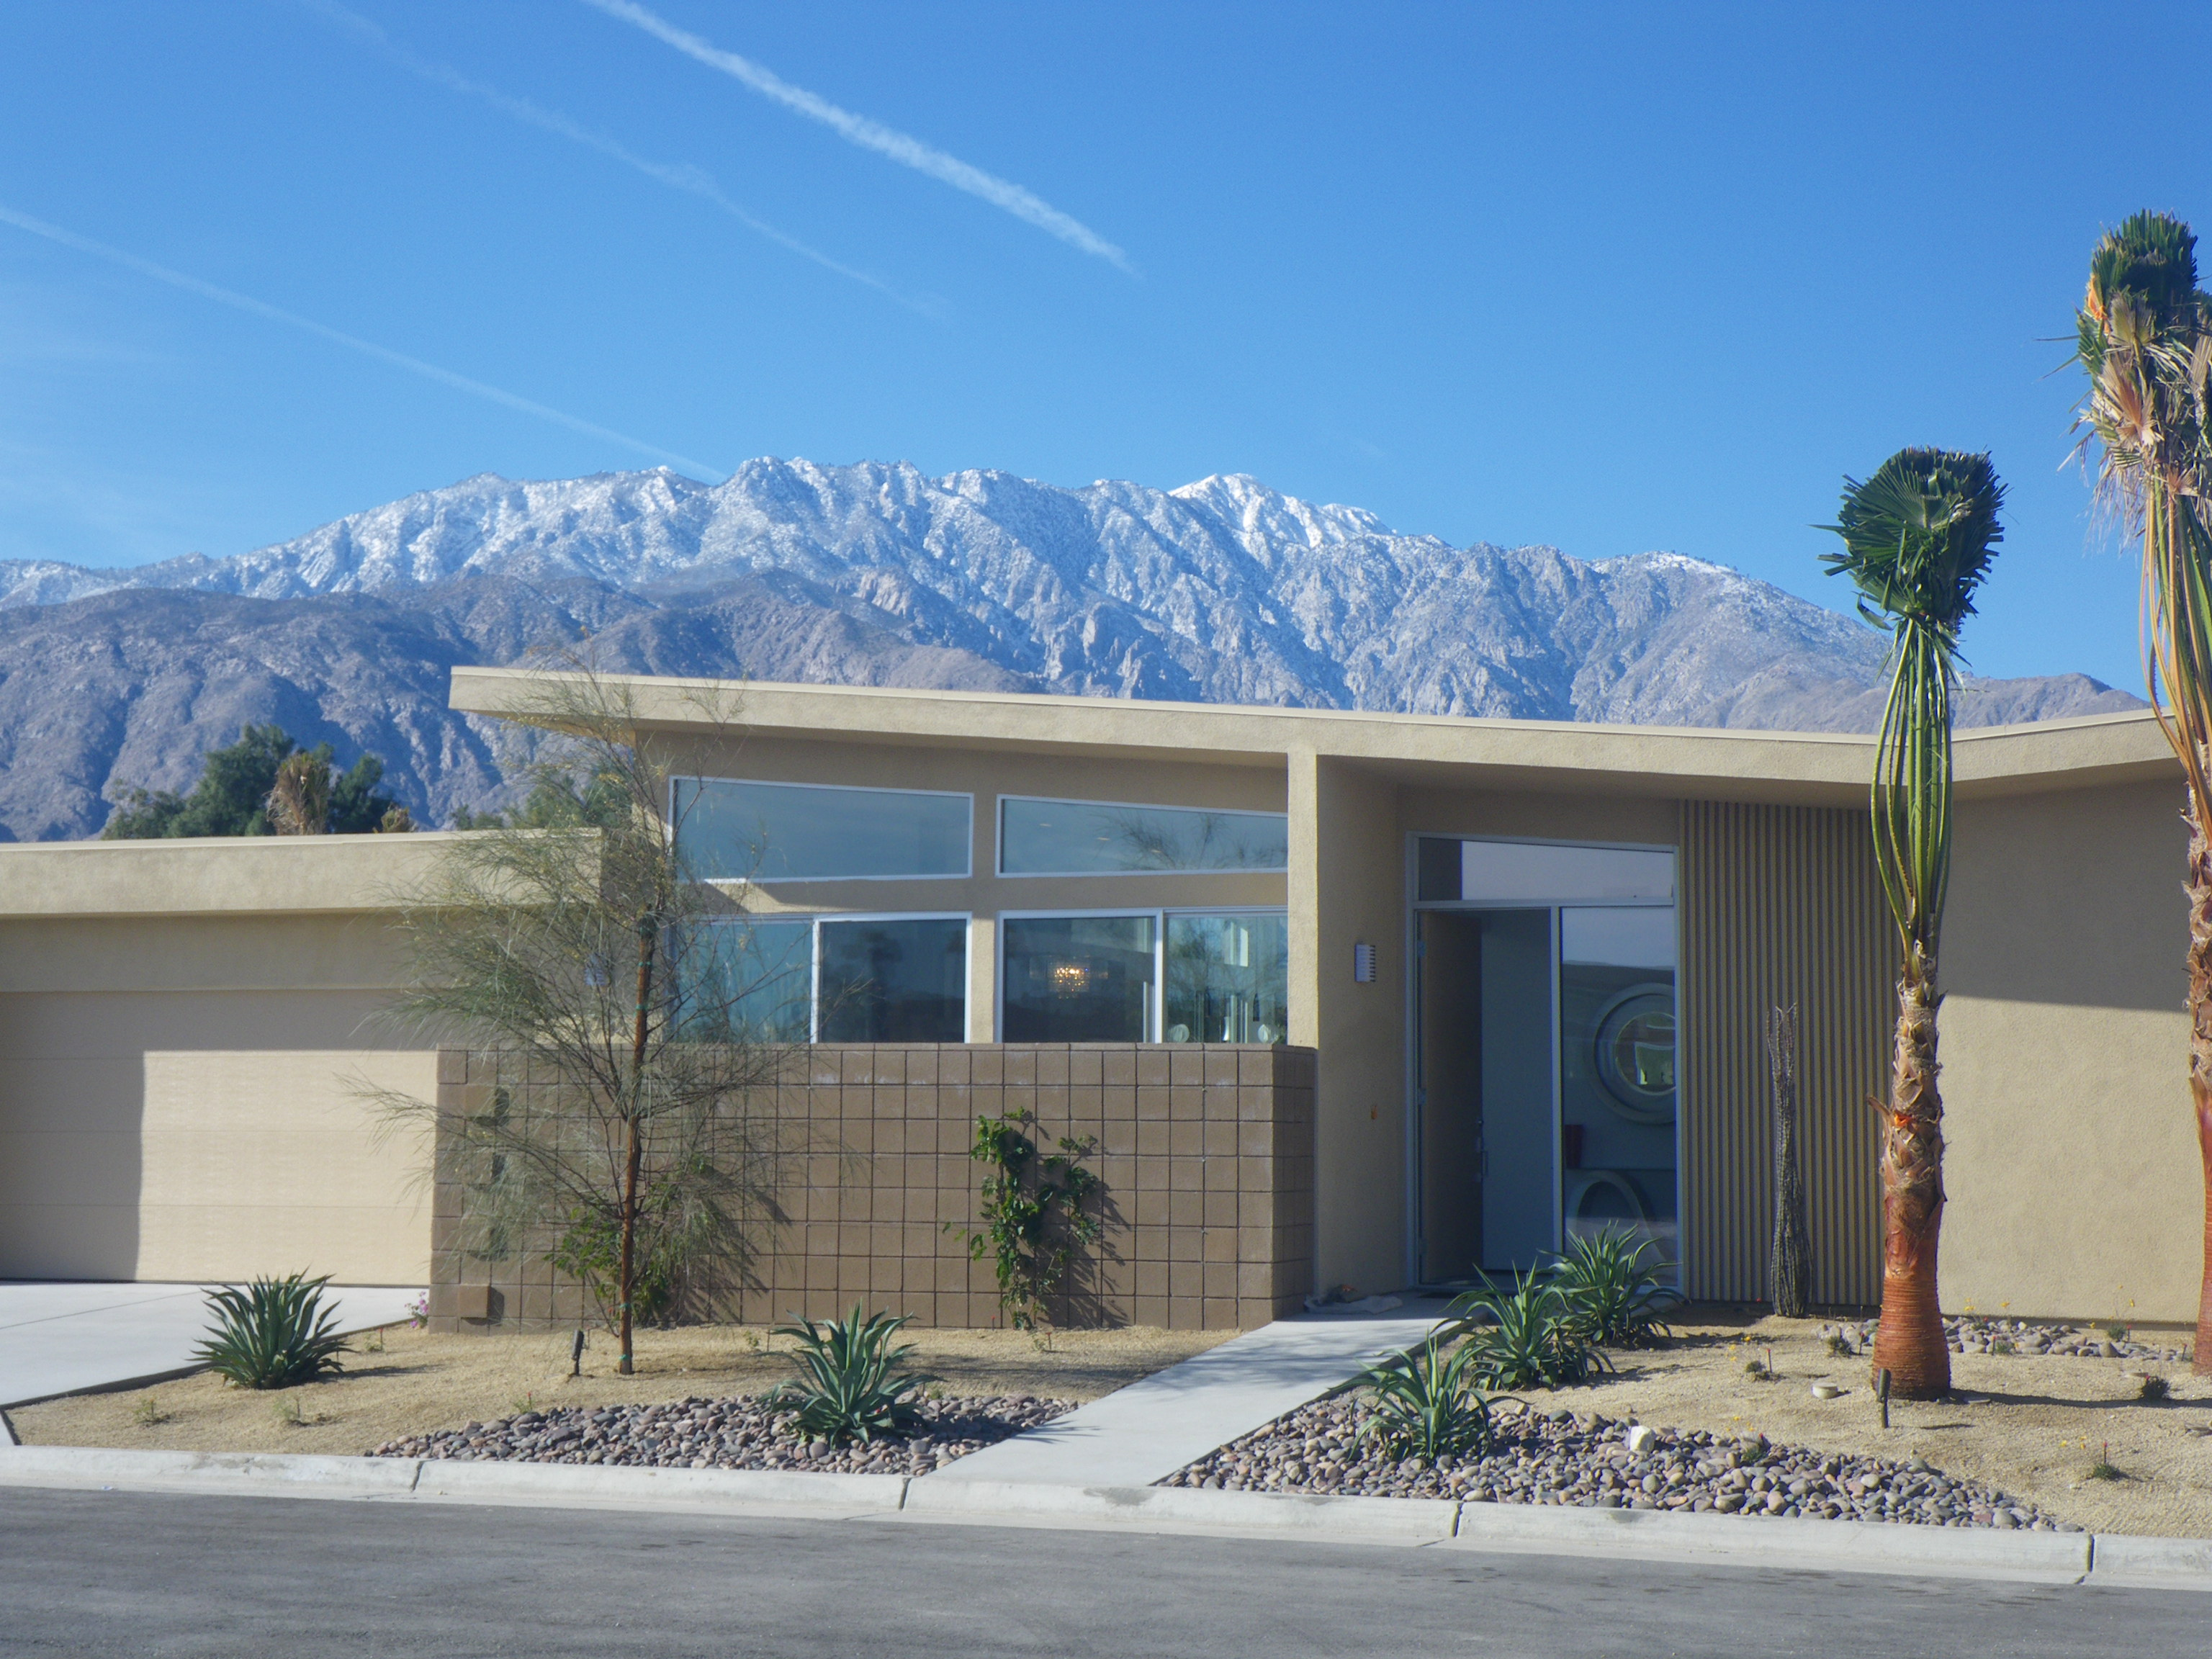 Palm springs homes live from la quinta for Property in palm springs